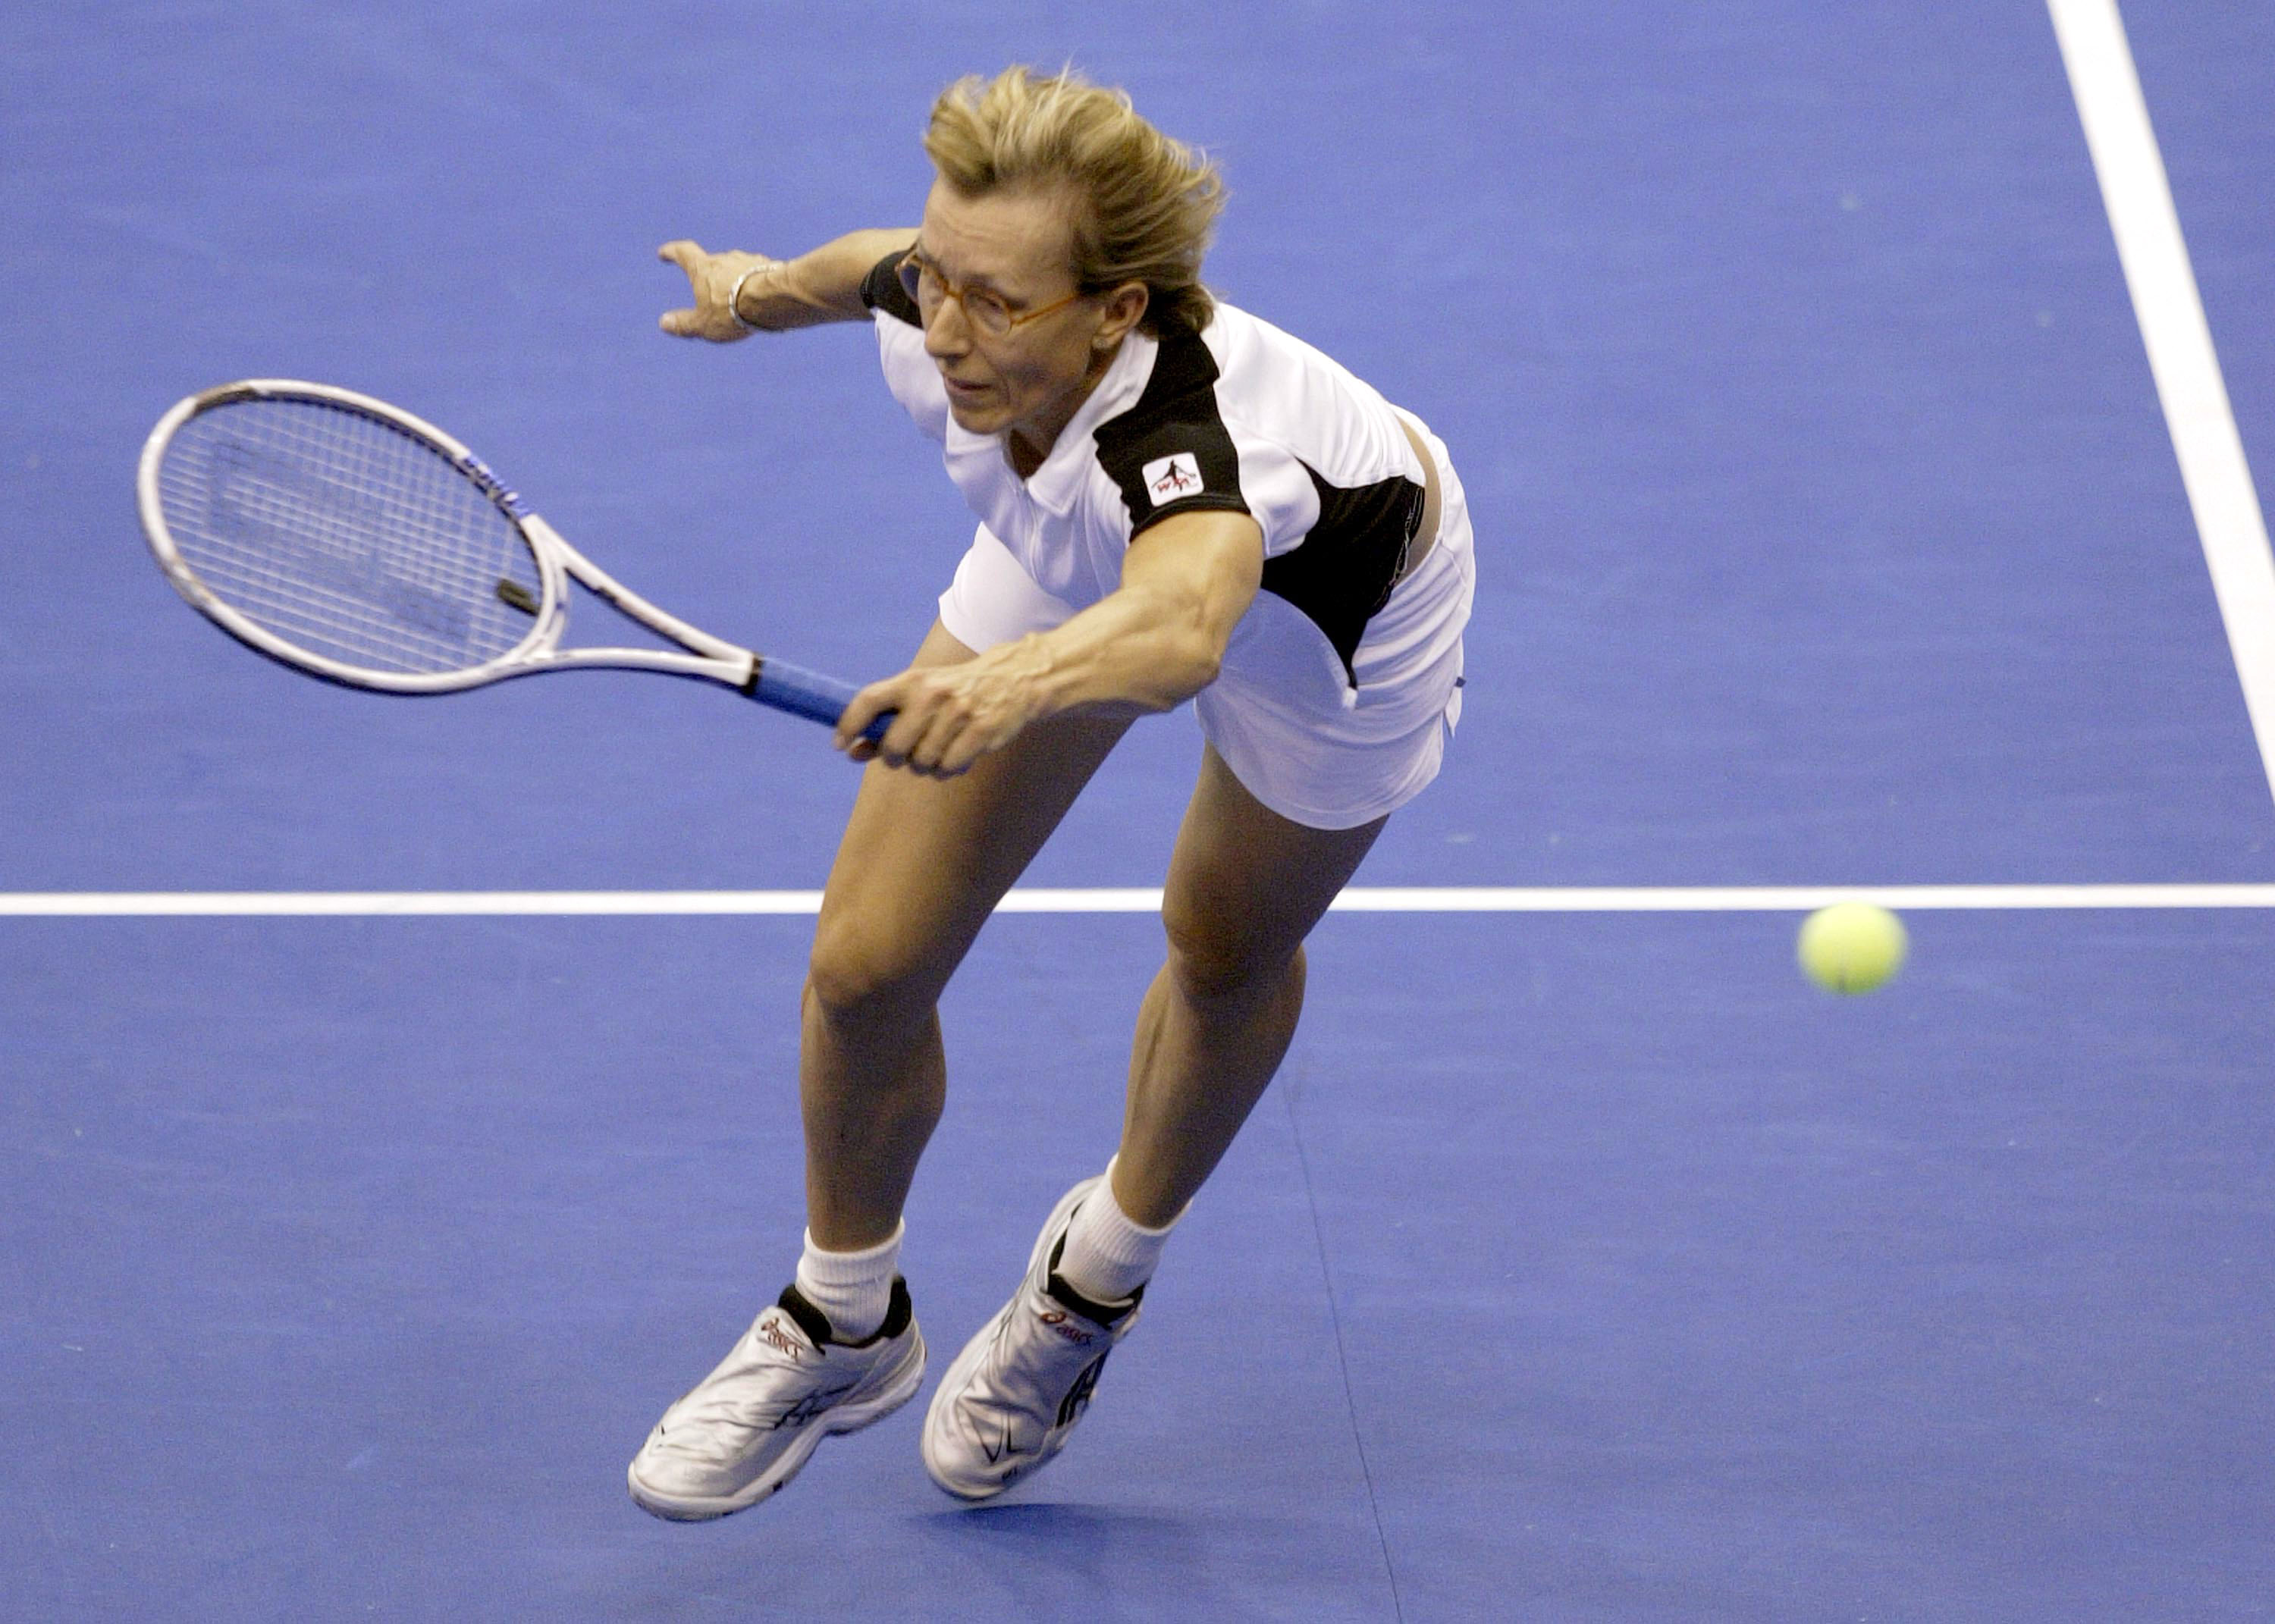 Ever the stalwart, Martina Navratilova played doubles with Svetlana Kuznetsova